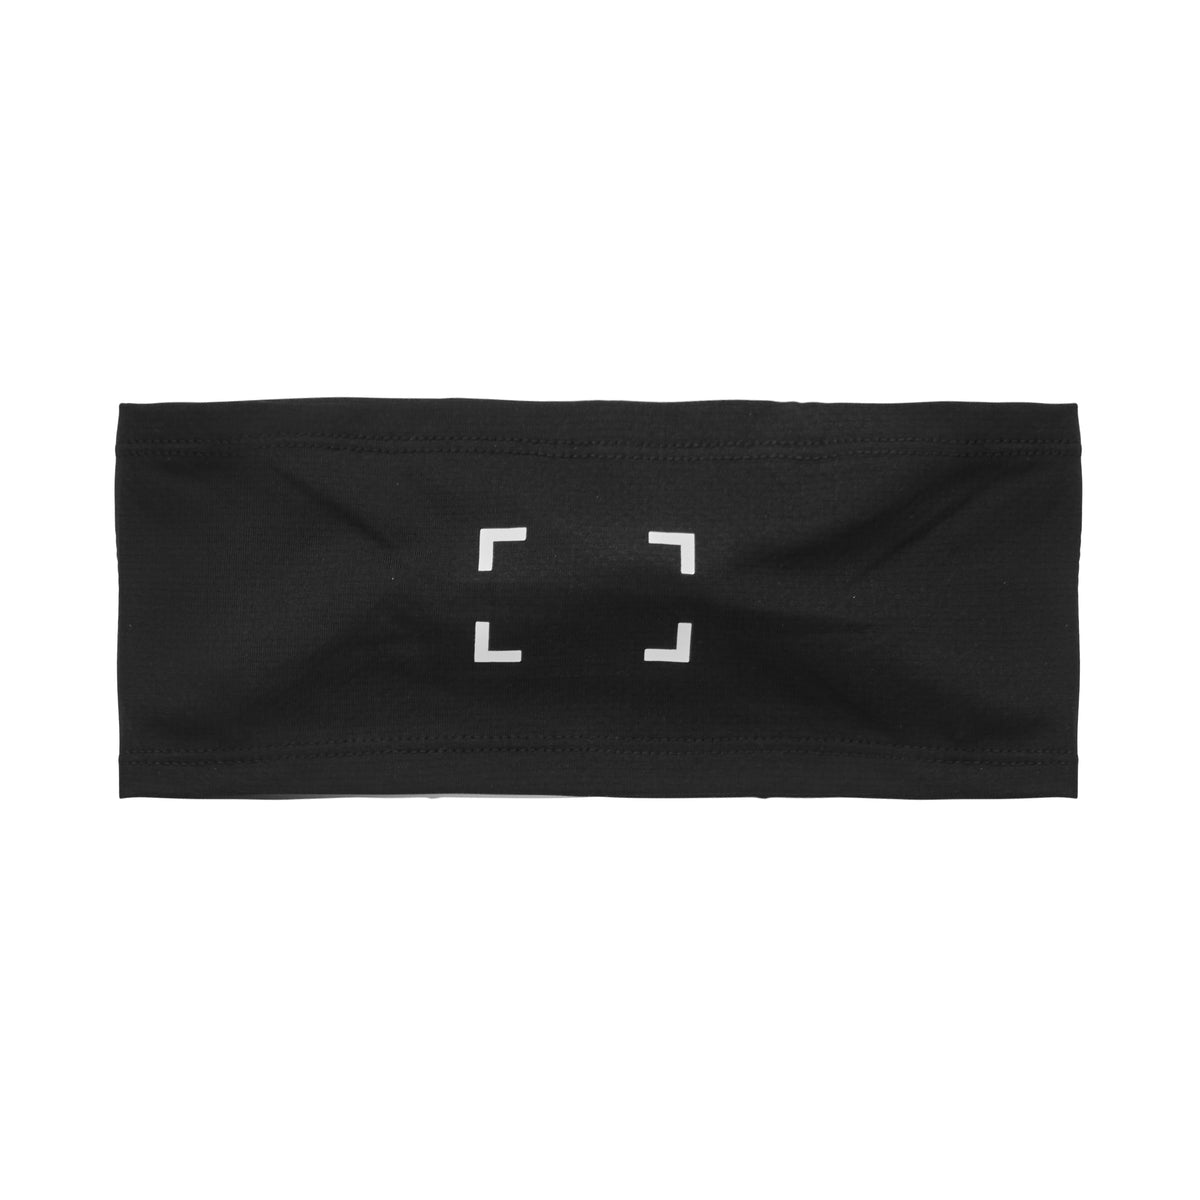 0249. Silver-Lite® Bracket Logo Headband - Black